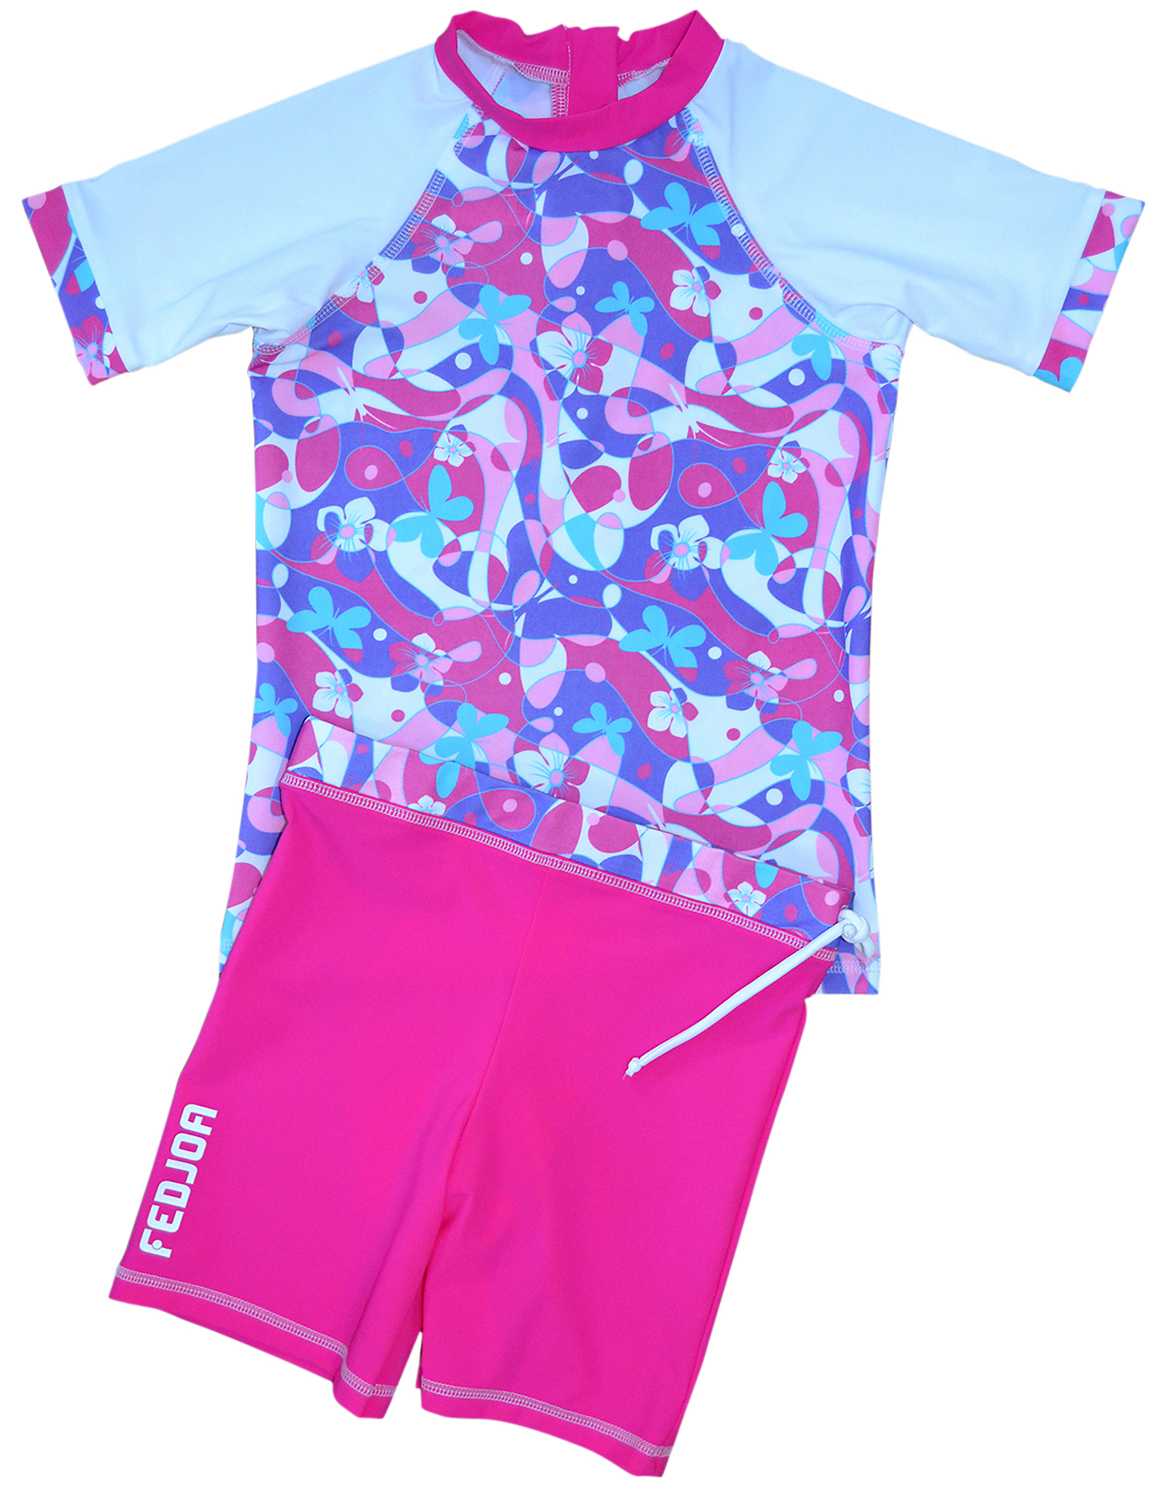 e4daff572e UV T-shirt, UV Shorts, UV Sun Protection Combo Swim Set- for babies and  kids FANTASIA